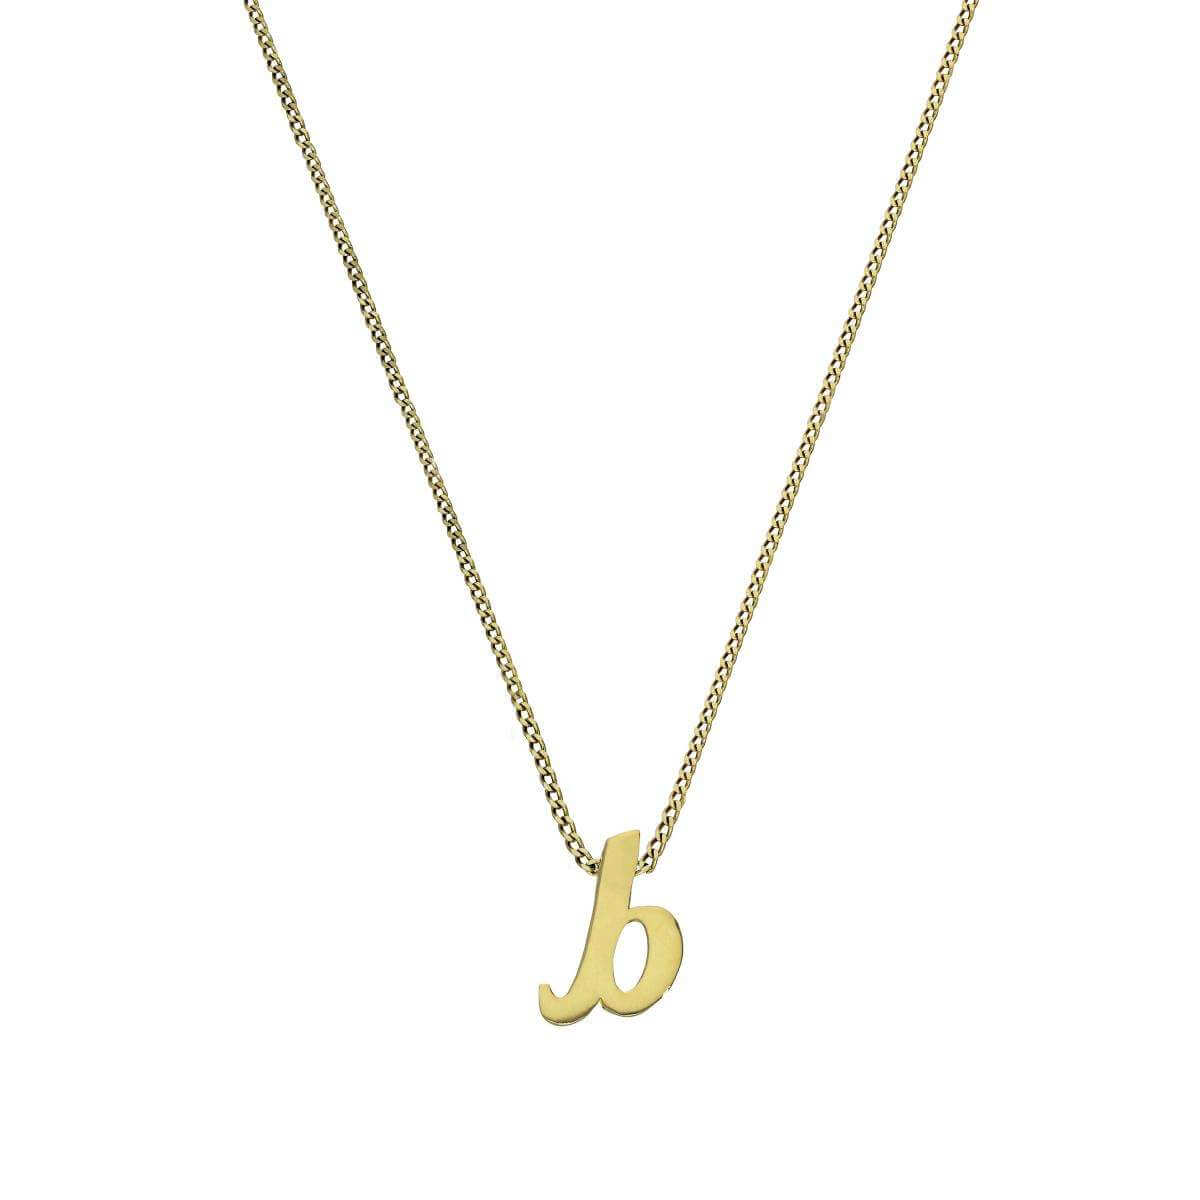 Tiny 9ct Gold Alphabet Letter B Pendant on Chain 16 - 20 Inches